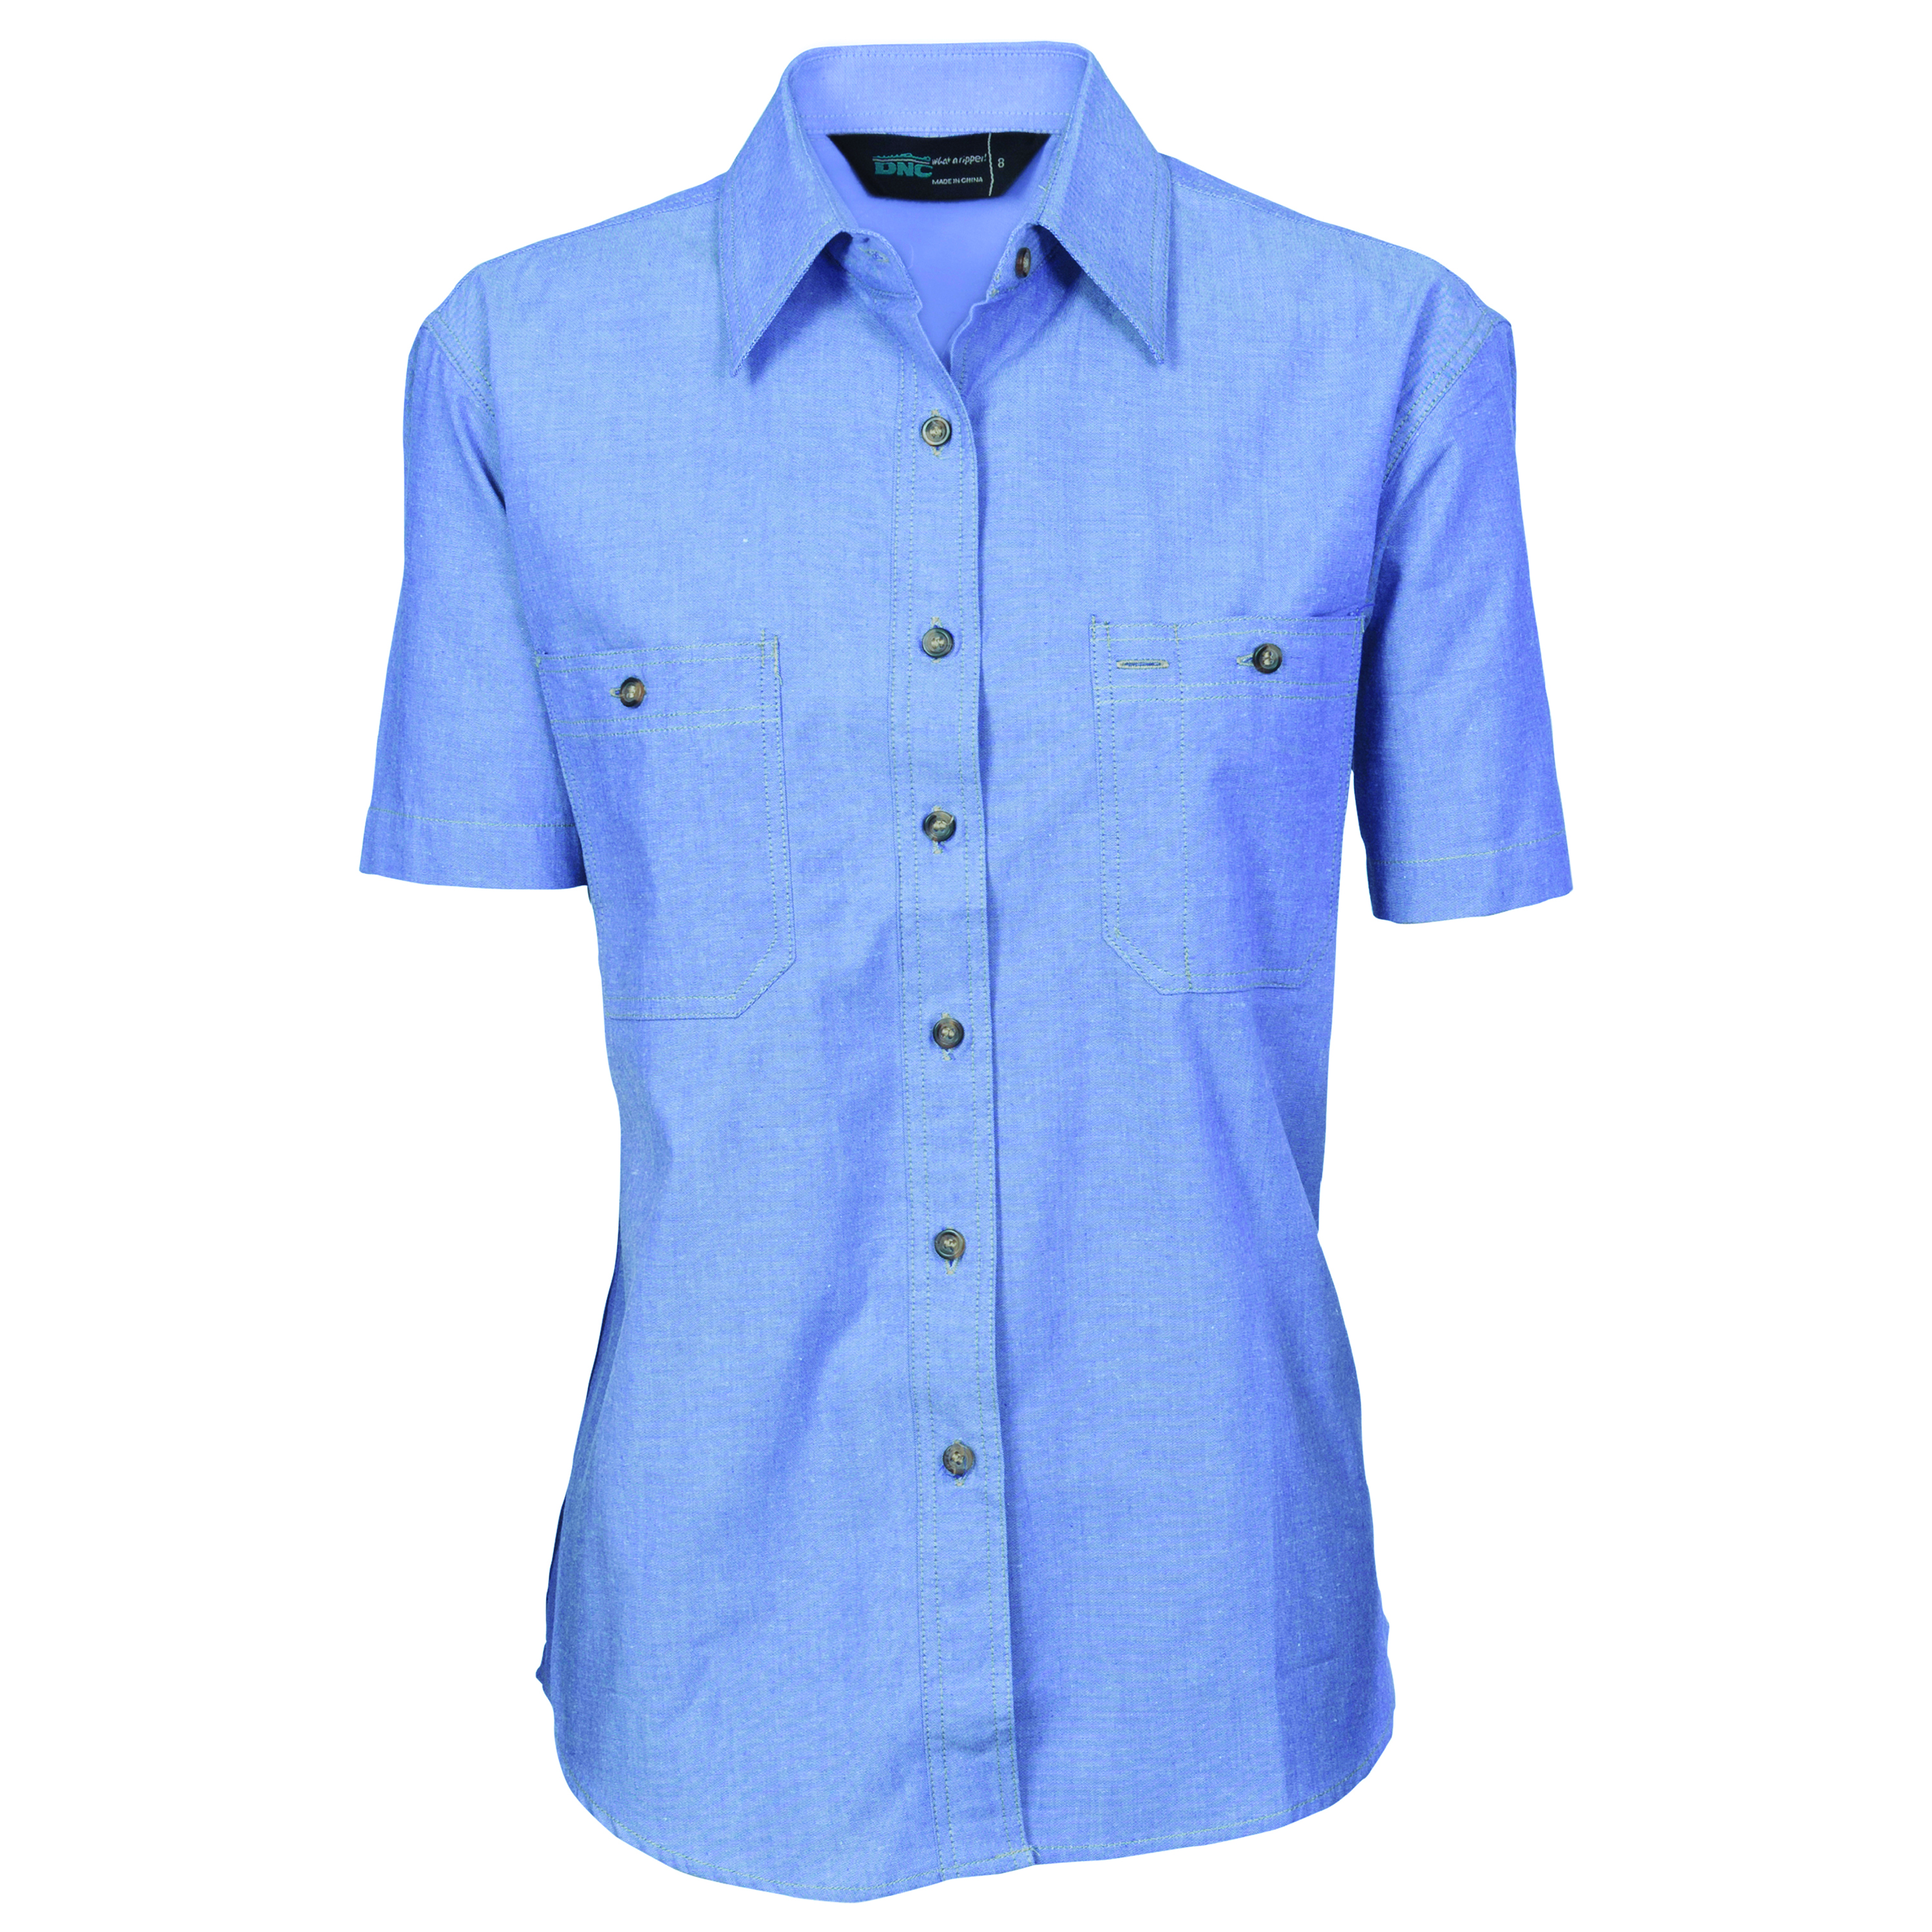 Product display dnc workwear workwear work wear for Short sleeve chambray shirt women